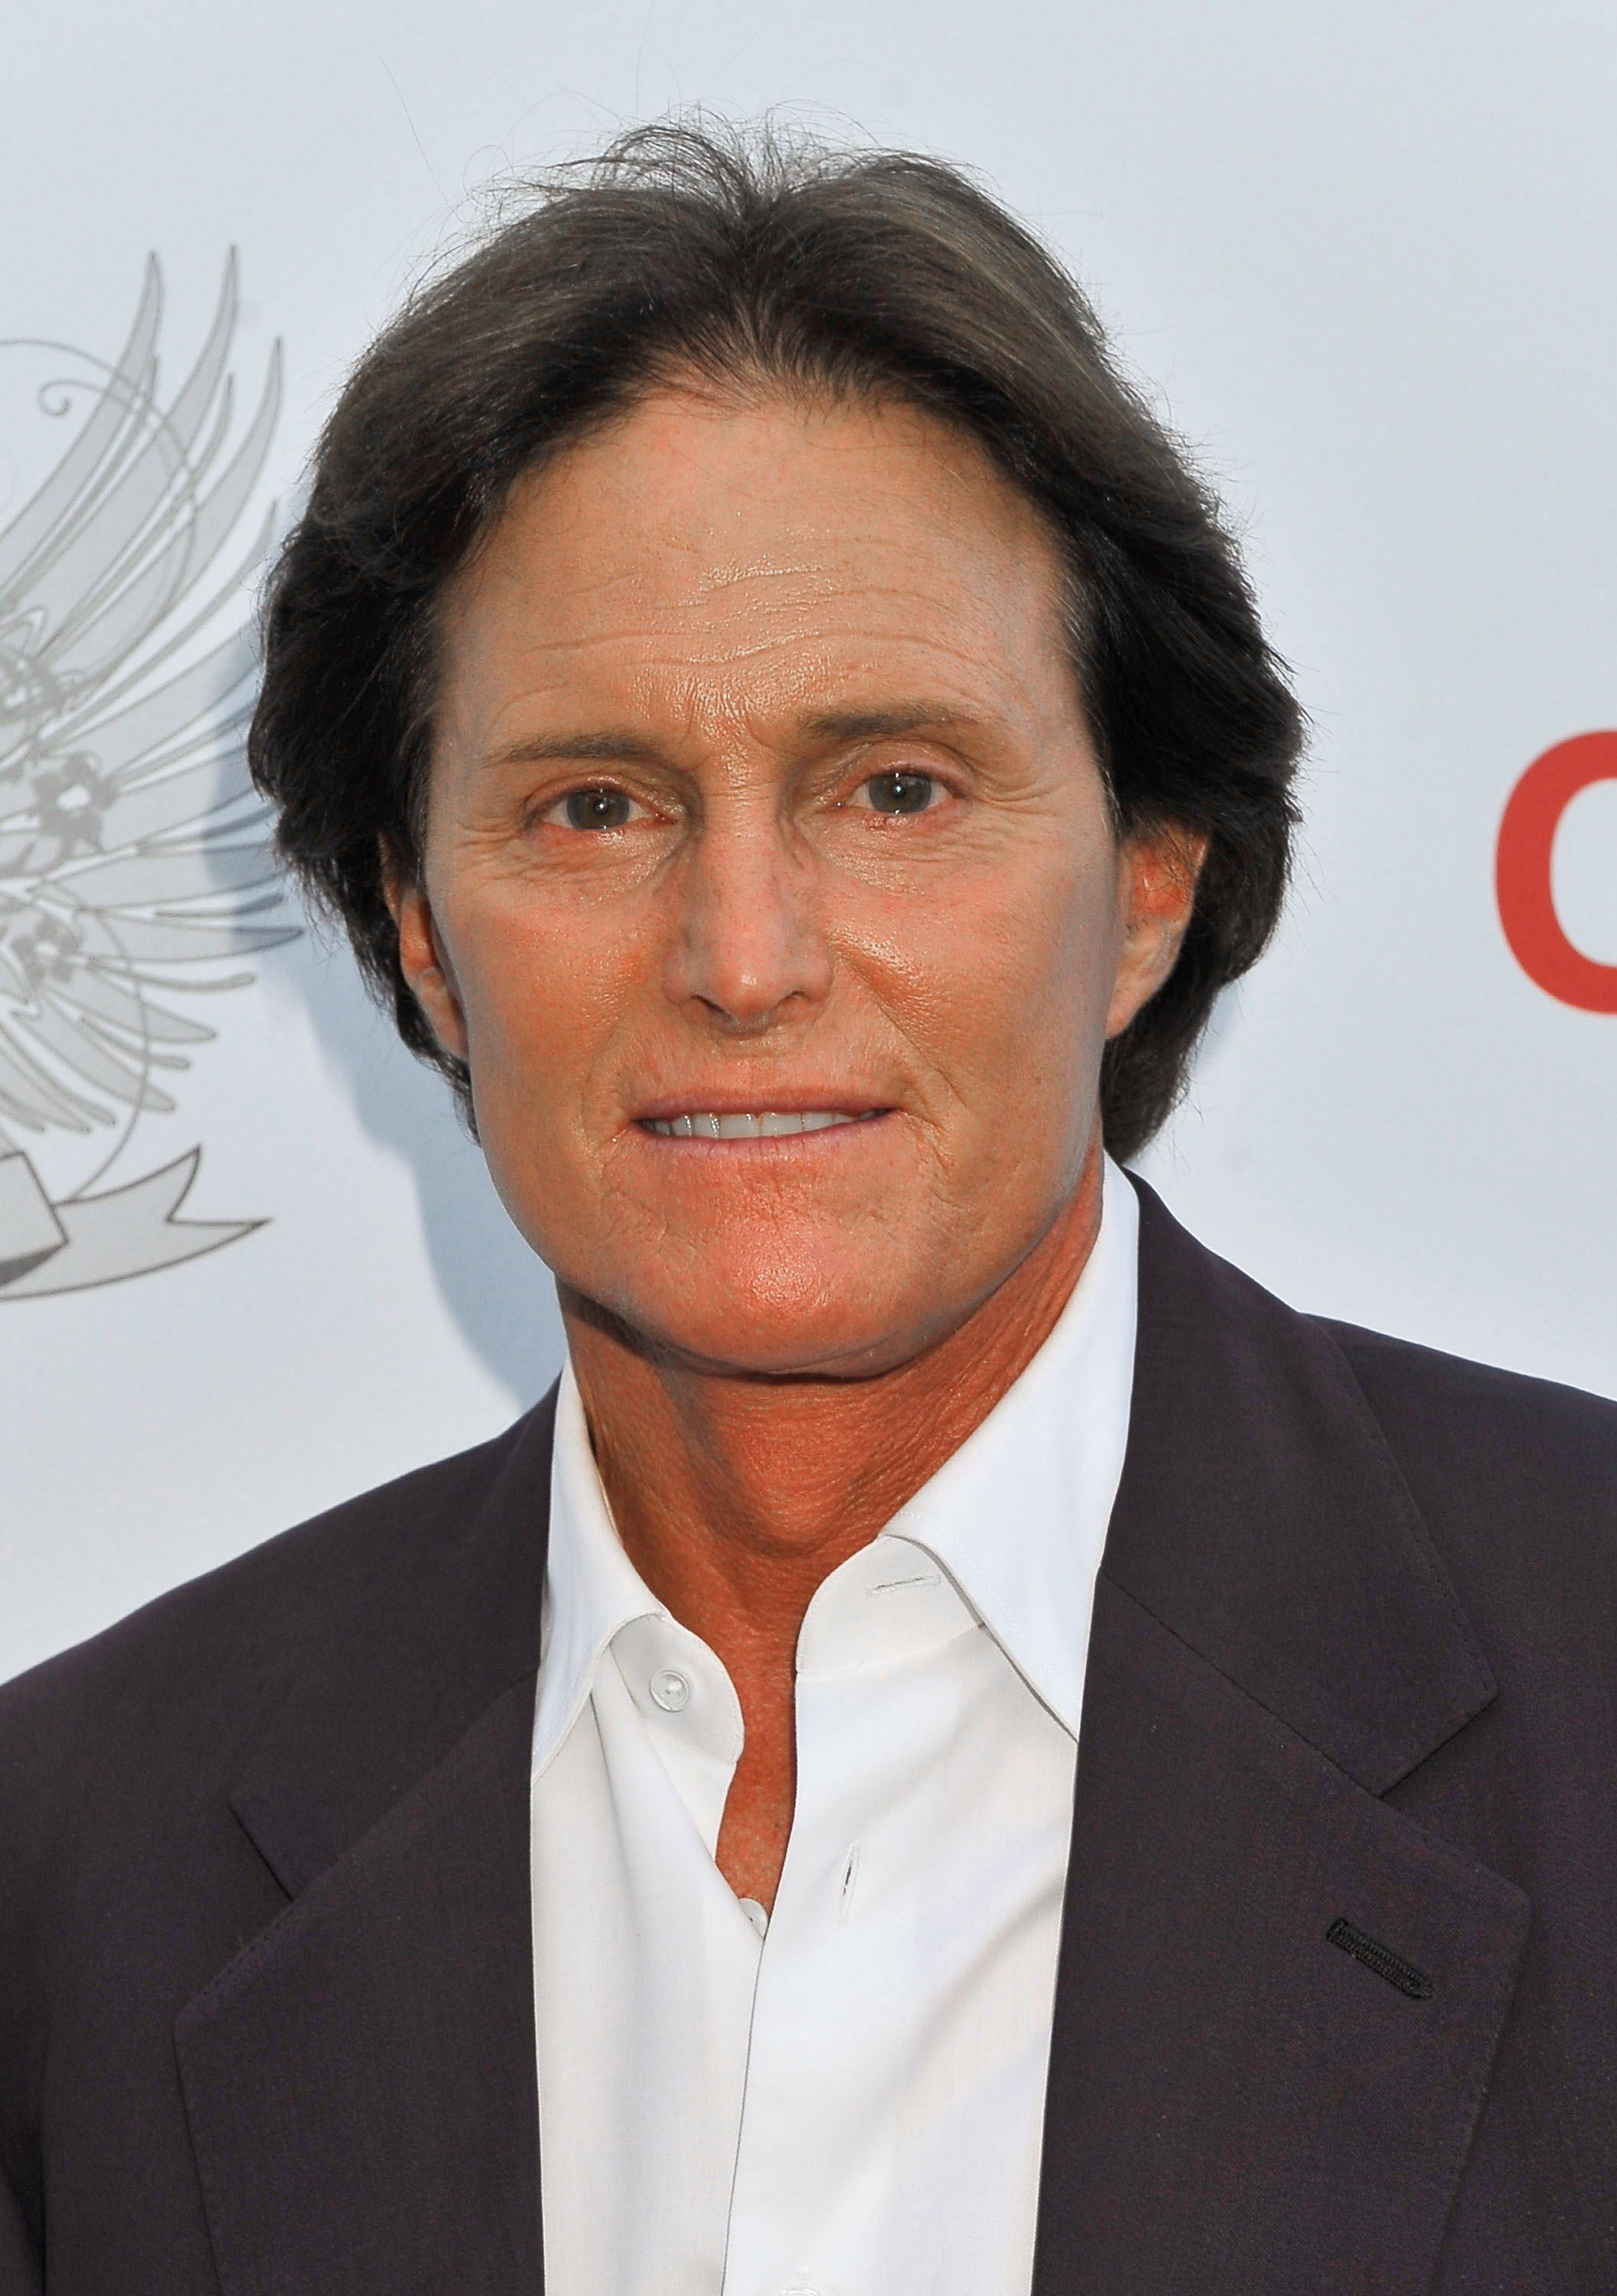 Bruce Jenner arrives at the Aces & Angels Celebrity Poker Party at The Playboy Mansion on July 11, 2009 in Beverly Hills, California | Photo: GettyImages